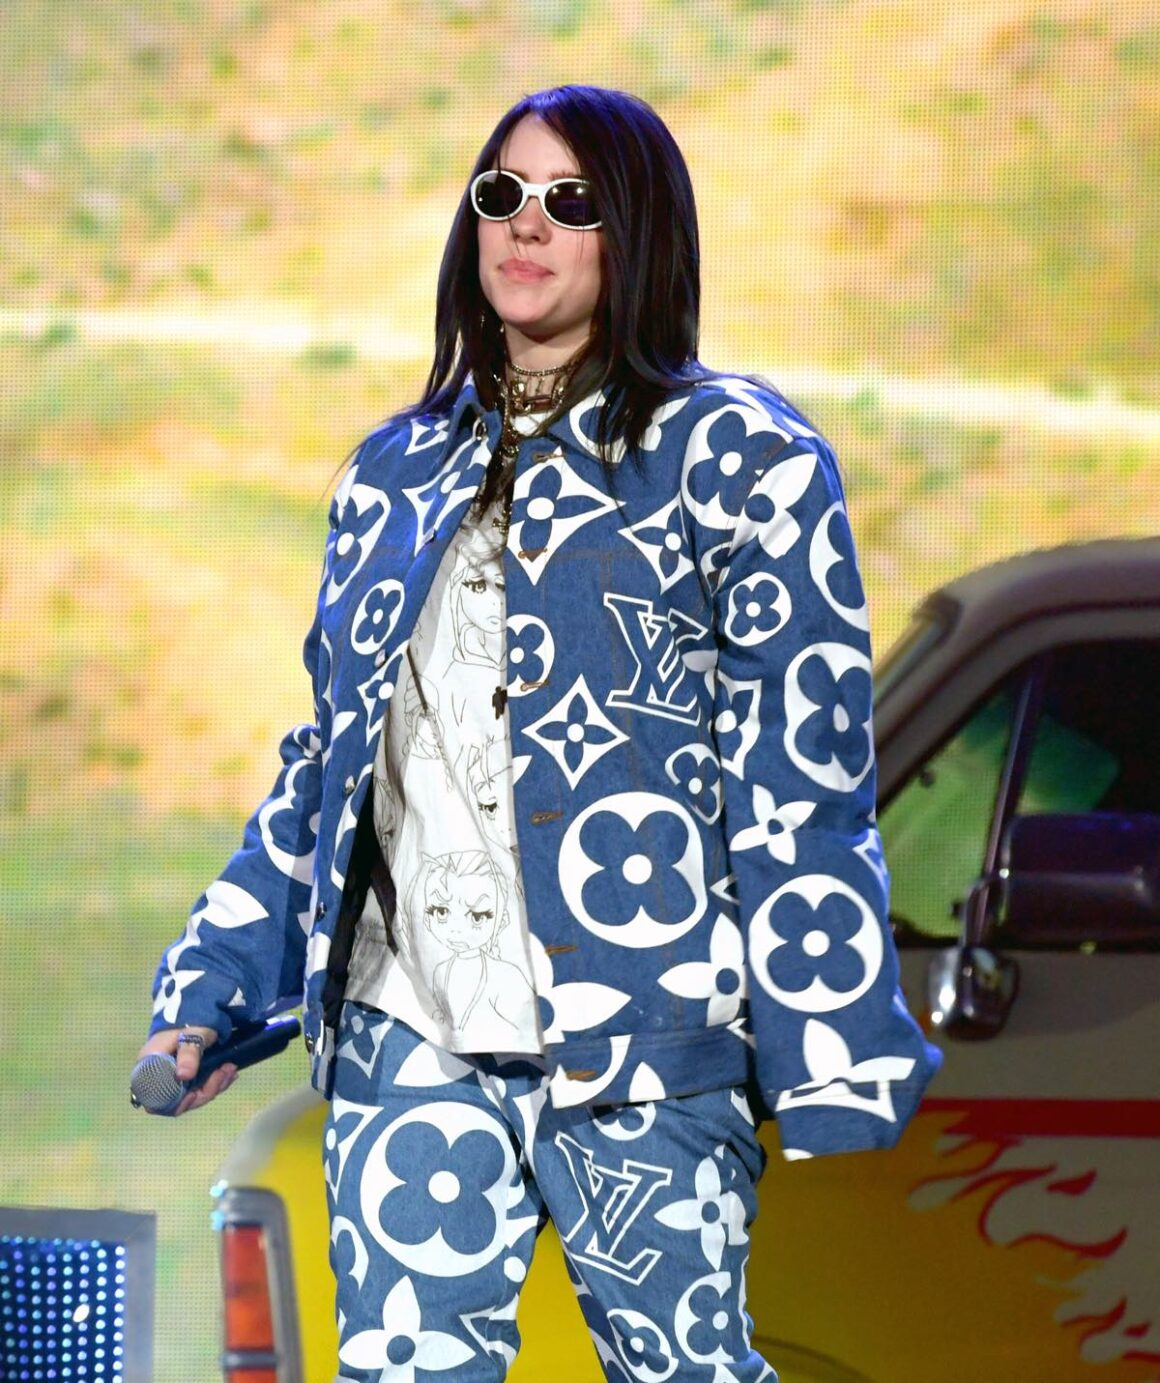 Billie Eilish 2019 Coachella Valley Music And Arts Festival - Weekend 1 - Day 3